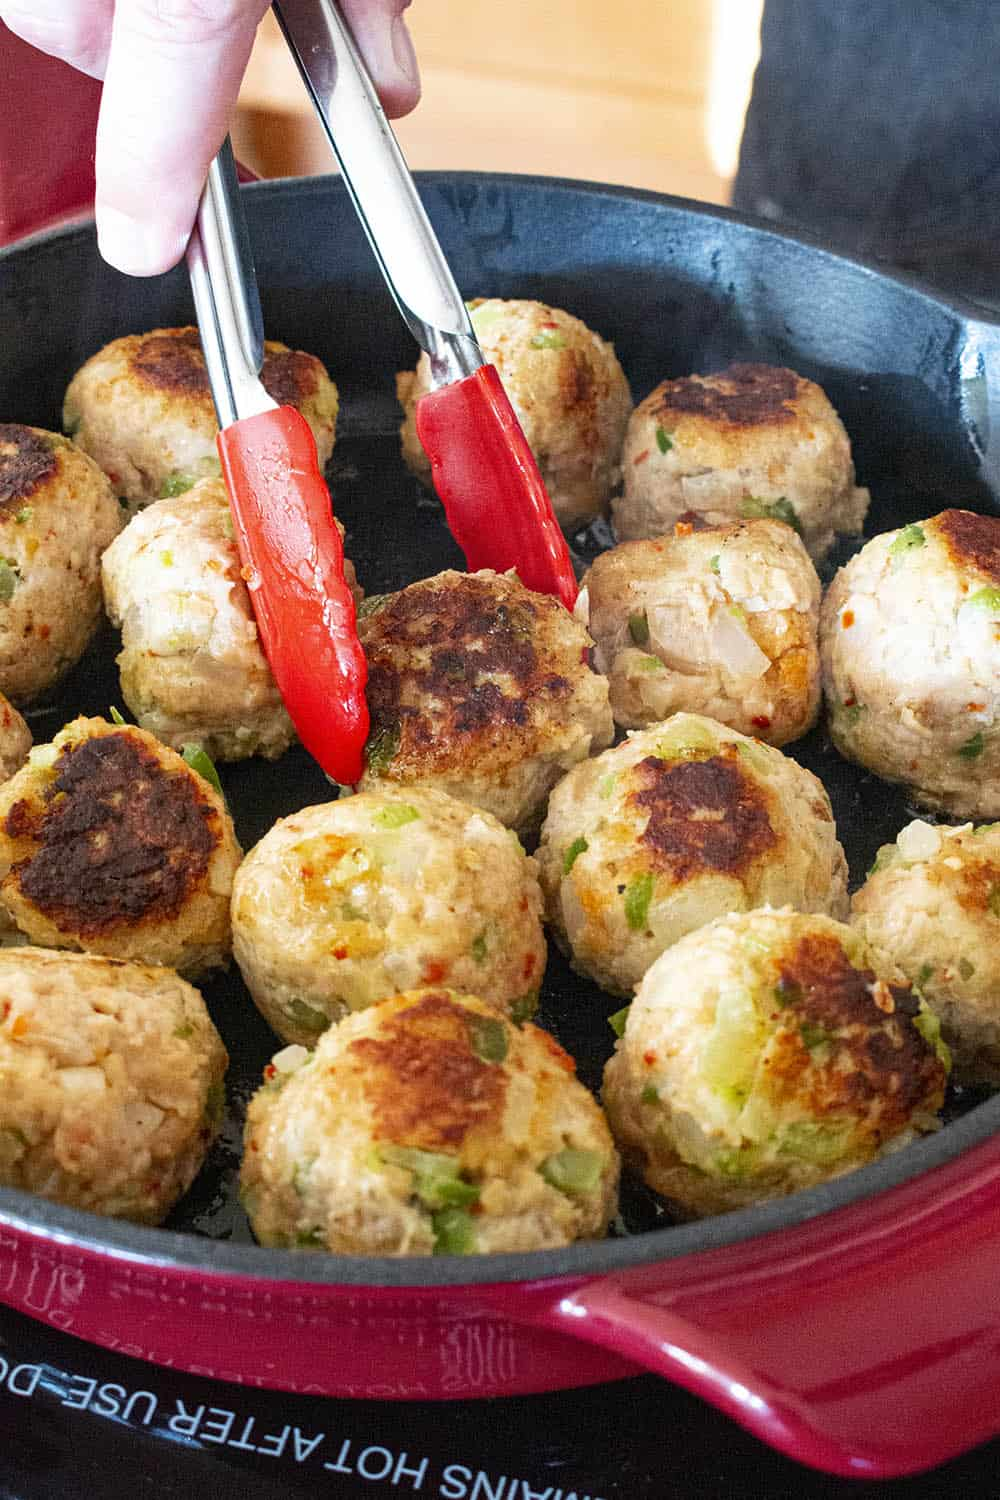 Searing off my chicken meatballs in a pan